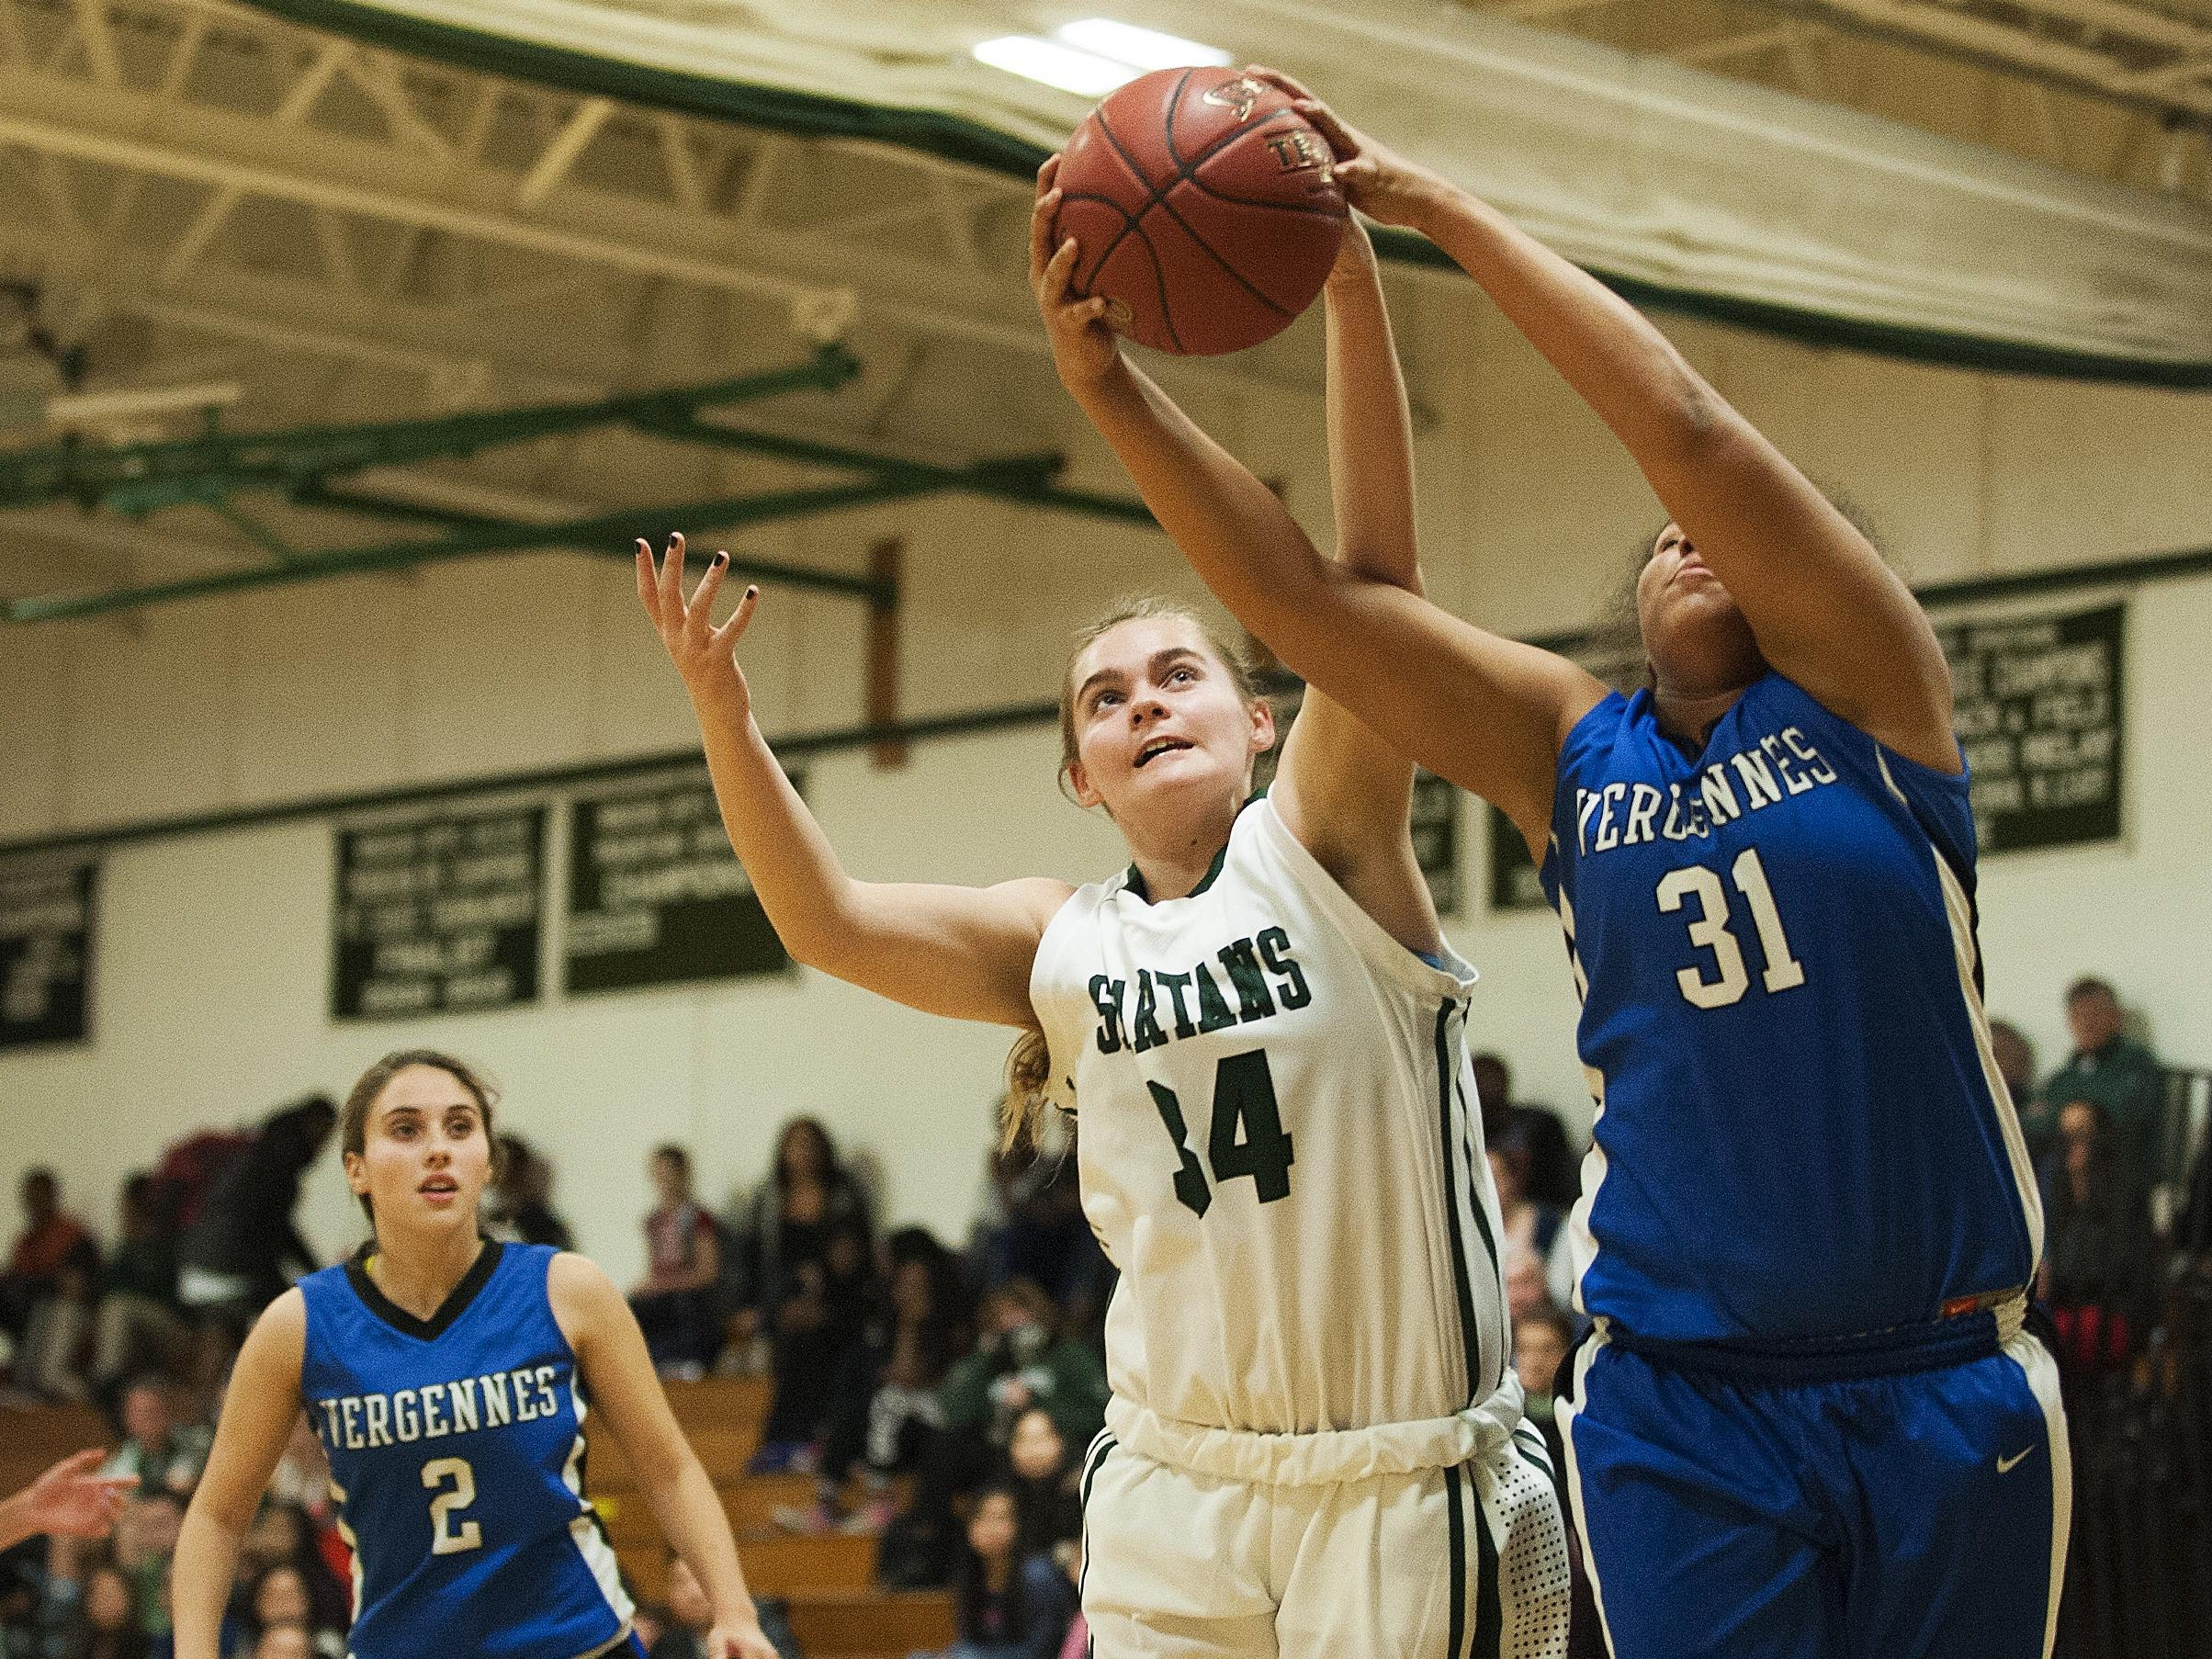 Vergennes' Nikkelette Salley, right, and Winooski's Mariah Metivier battle for the rebound during the girls basketball game between at Winooski High School on Wednesday night.